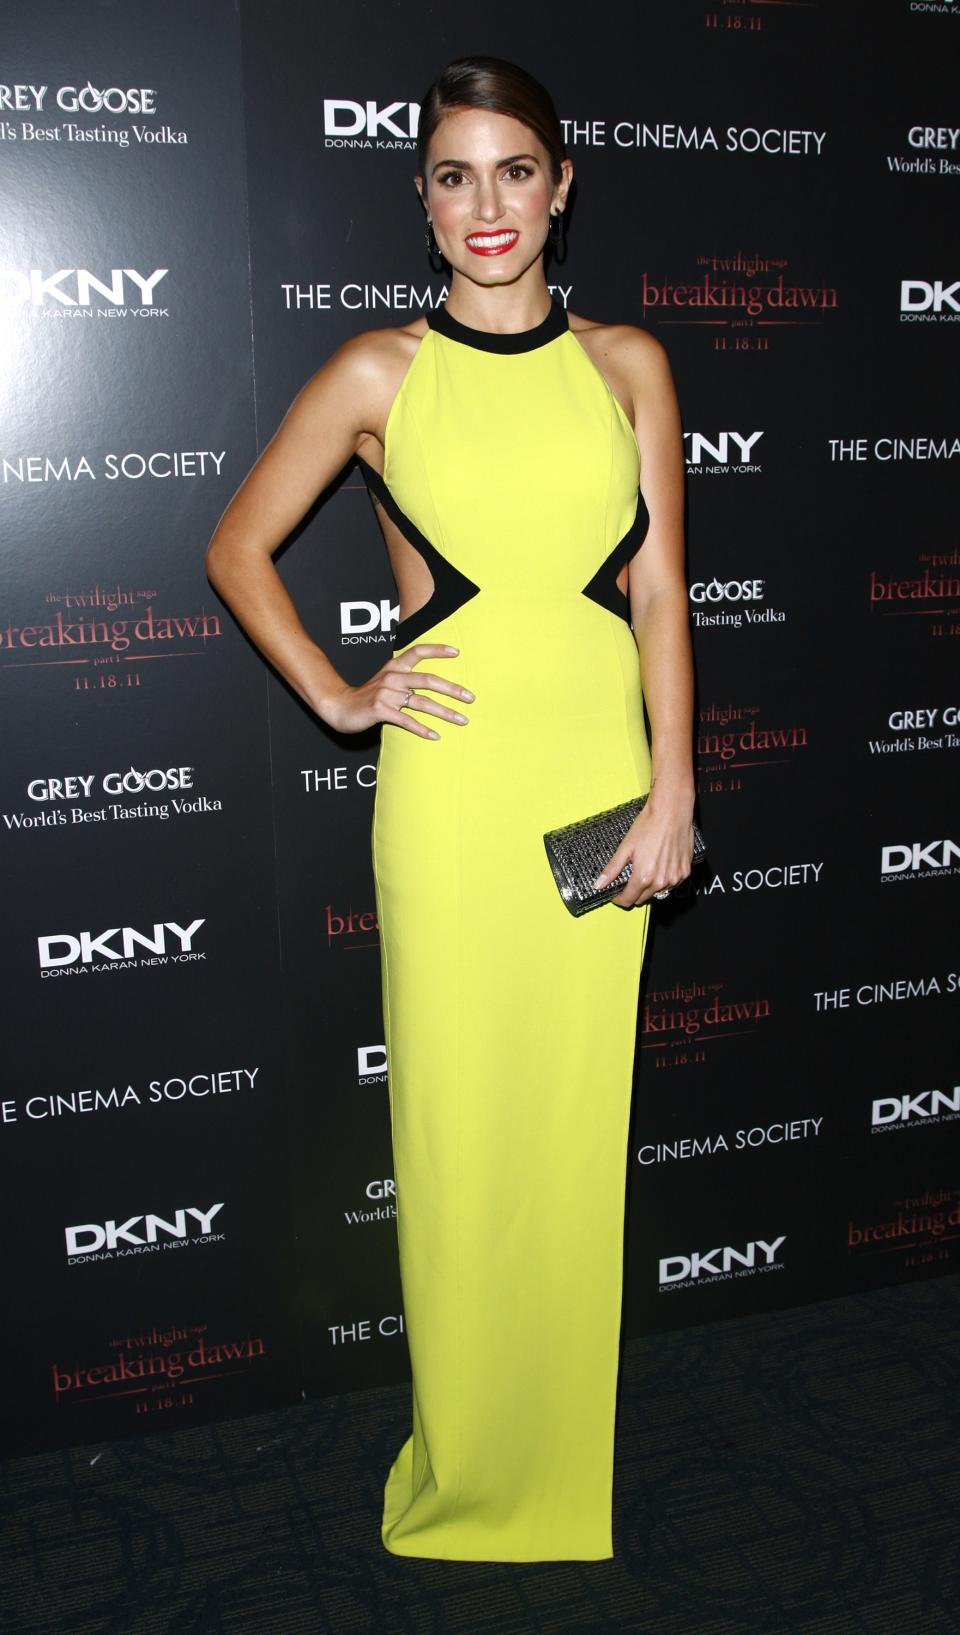 "Actress Nikki Reed attends the Cinema Society premiere of ""The Twilight Saga: Breaking Dawn-Part 1"" on Wednesday, Nov. 16, 2011 in New York. (AP Photo/Peter Kramer)"